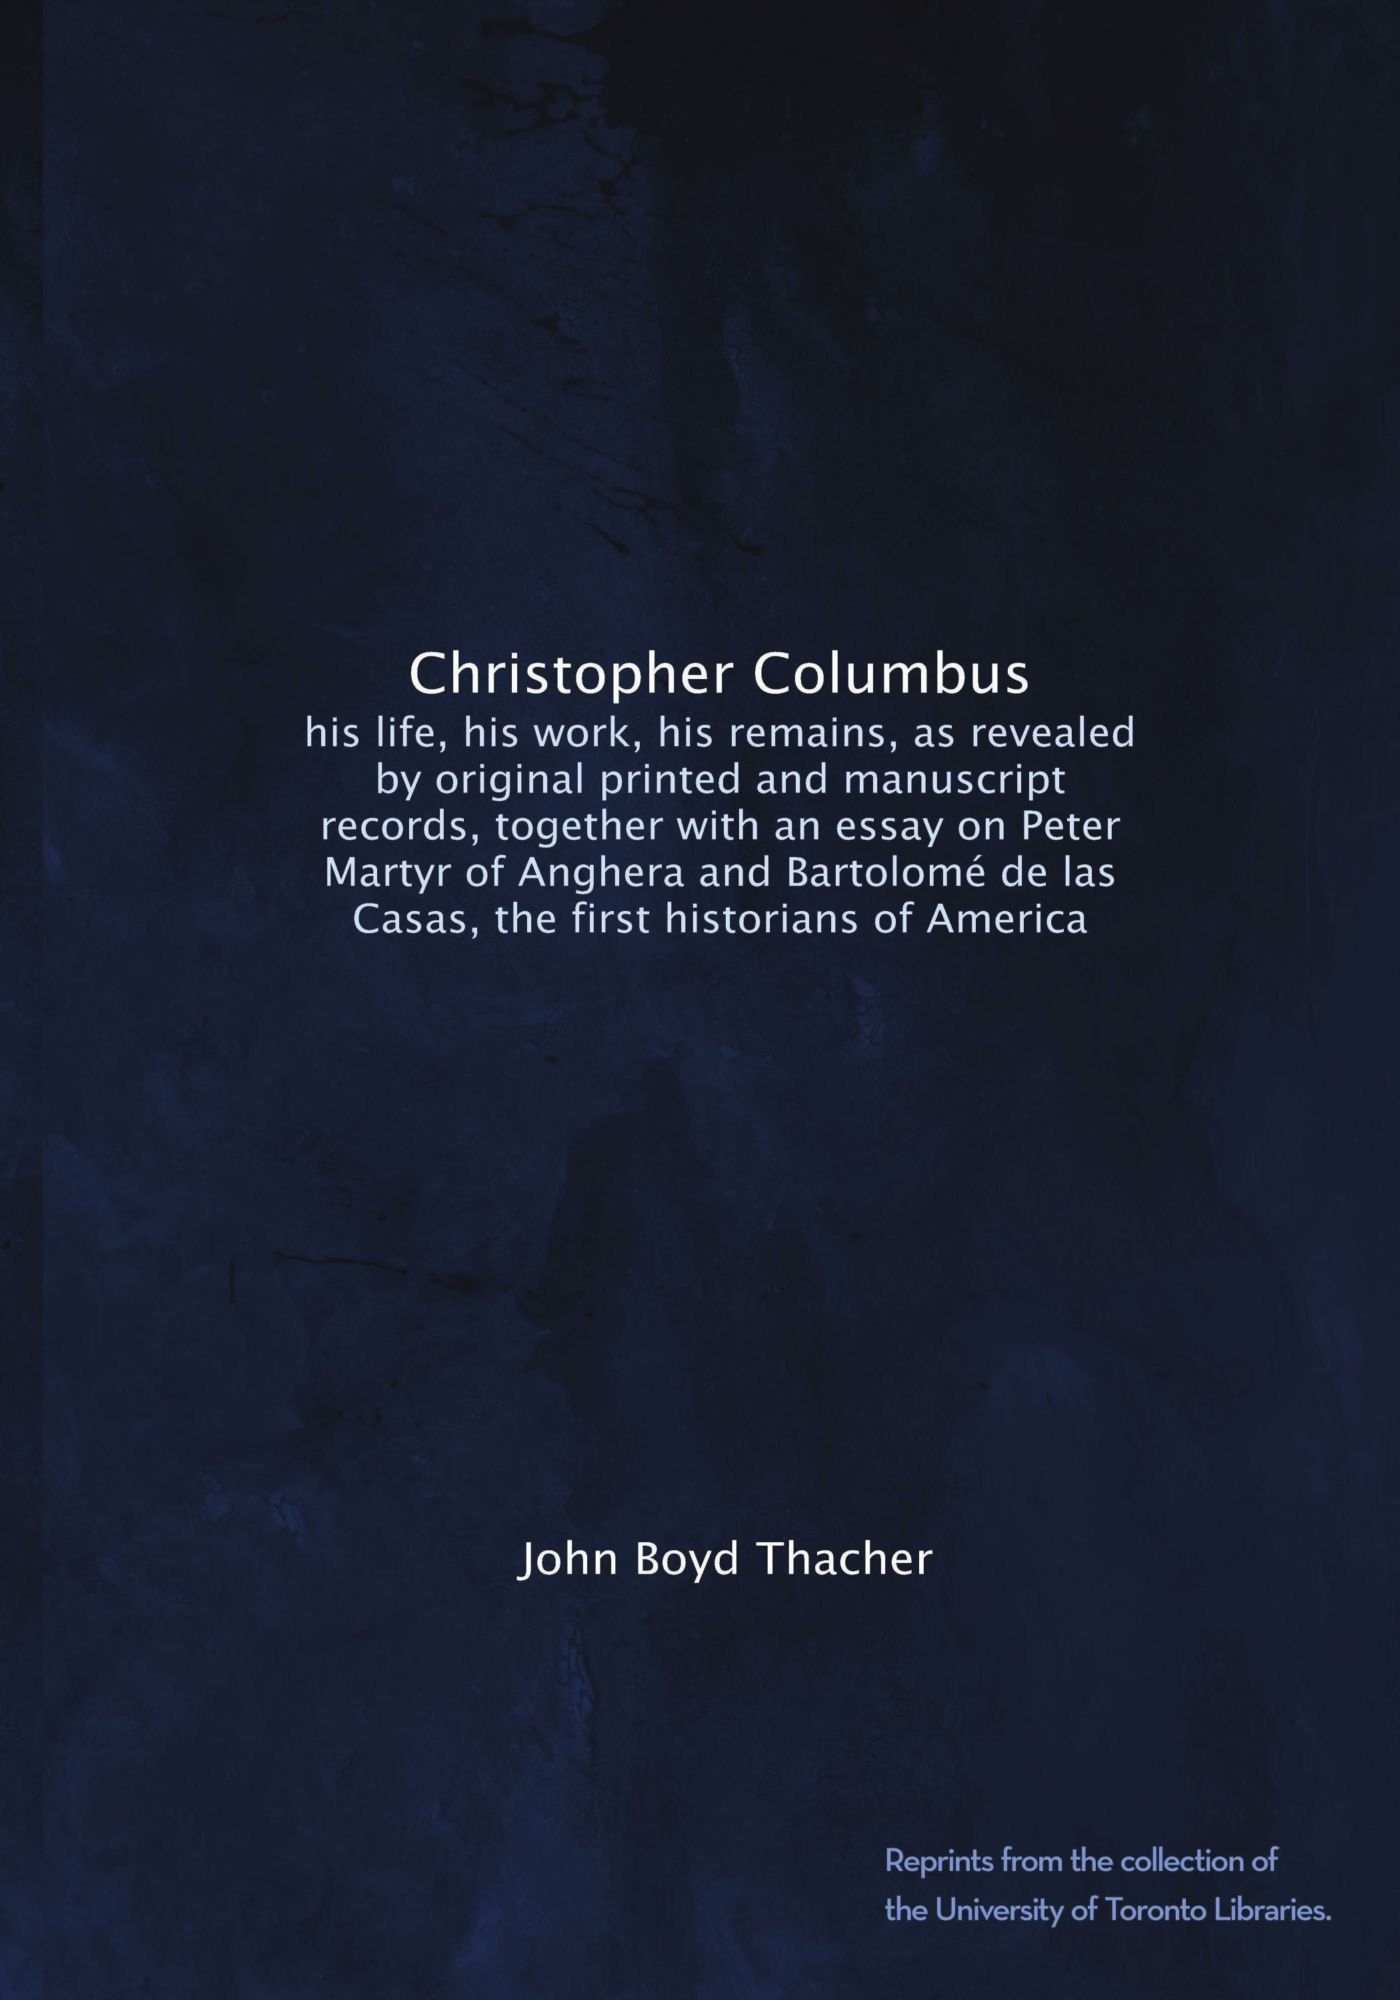 christopher columbus his life his work his remains as revealed christopher columbus his life his work his remains as revealed by original printed and manuscript records together an essay on peter martyr de